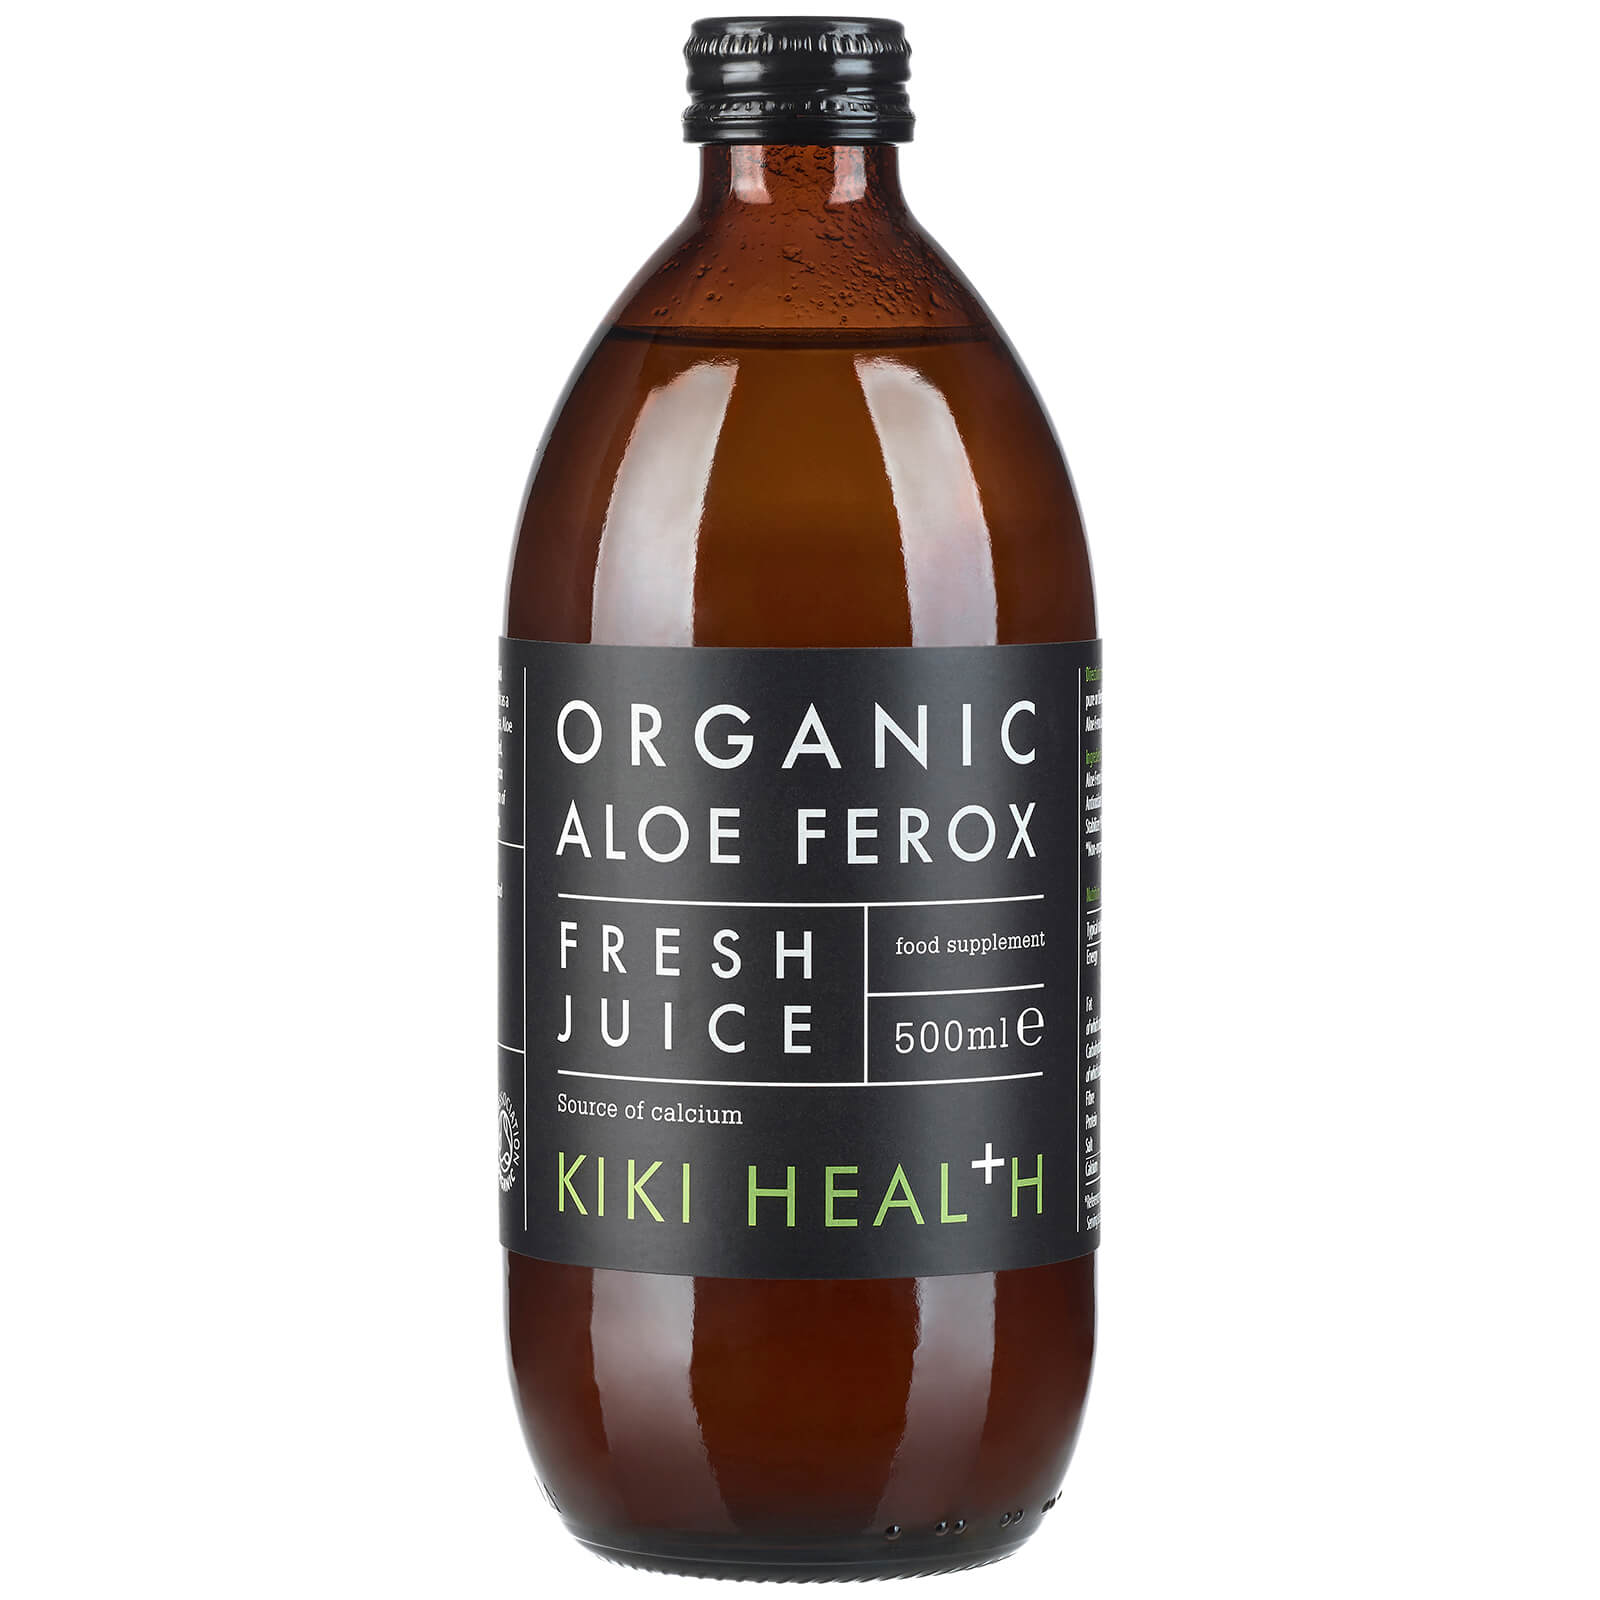 KIKI Health Organic Aloe Ferox Juice 500ml